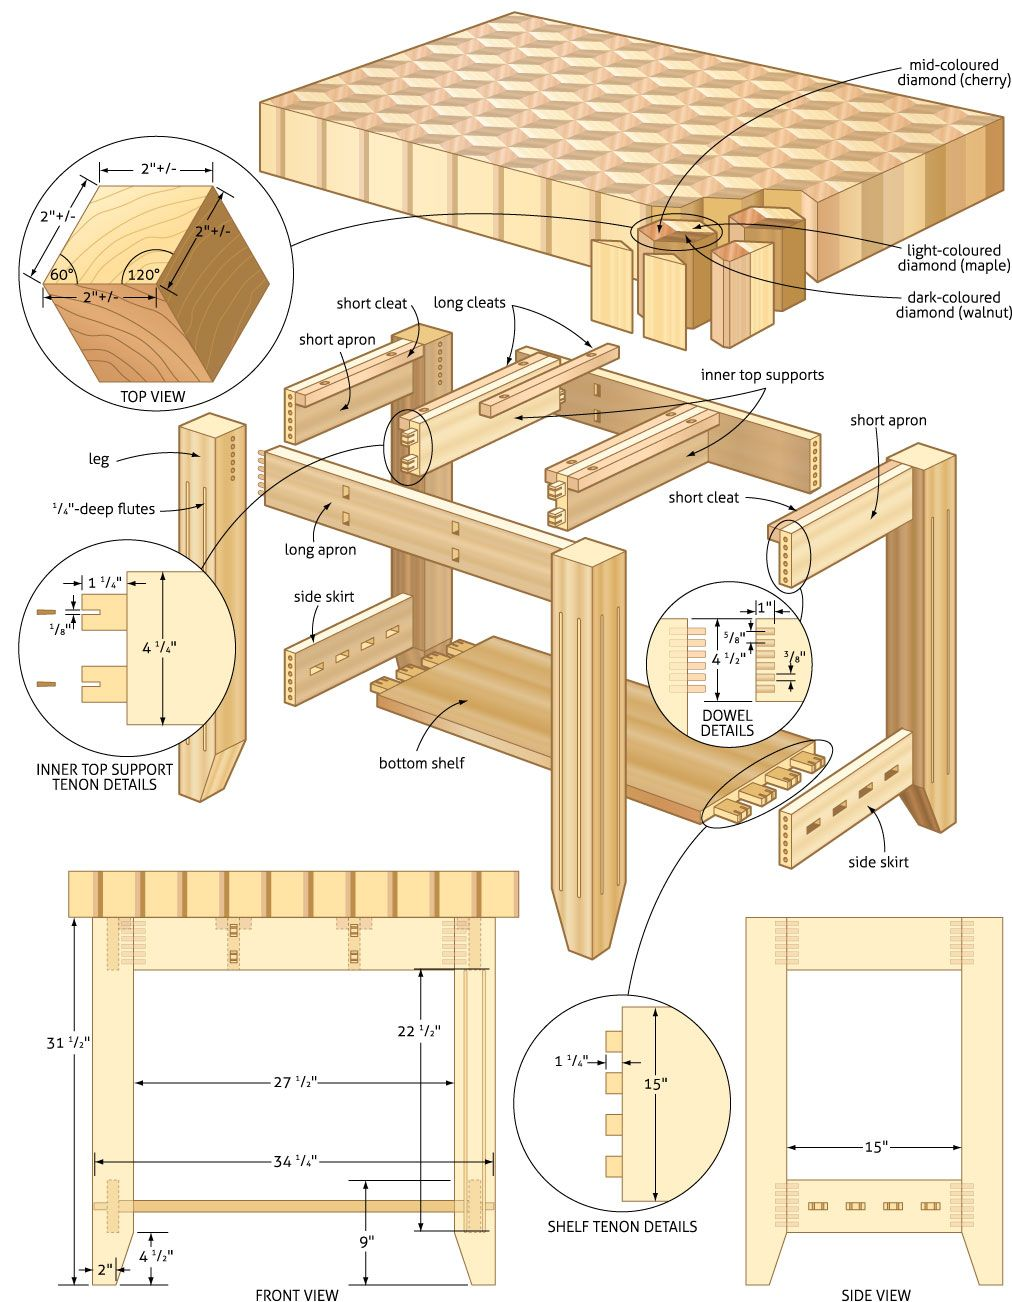 Nice Teds Woodworking Review Teds Wood Working Offers 16,000 Woodworking Plans  And Blueprints For Beginners To Advanced